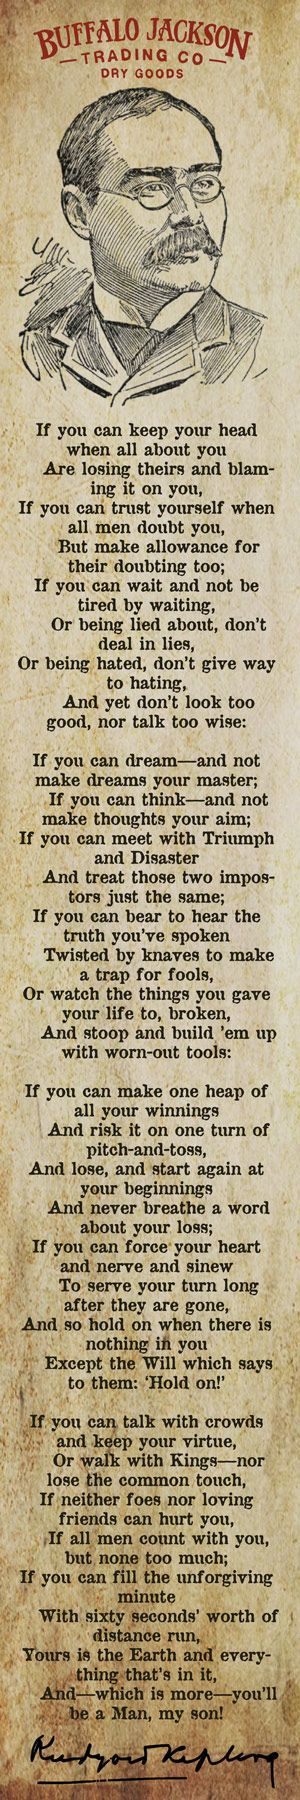 "Rudyard Kipling Quote for Men - ""If"" Poem"